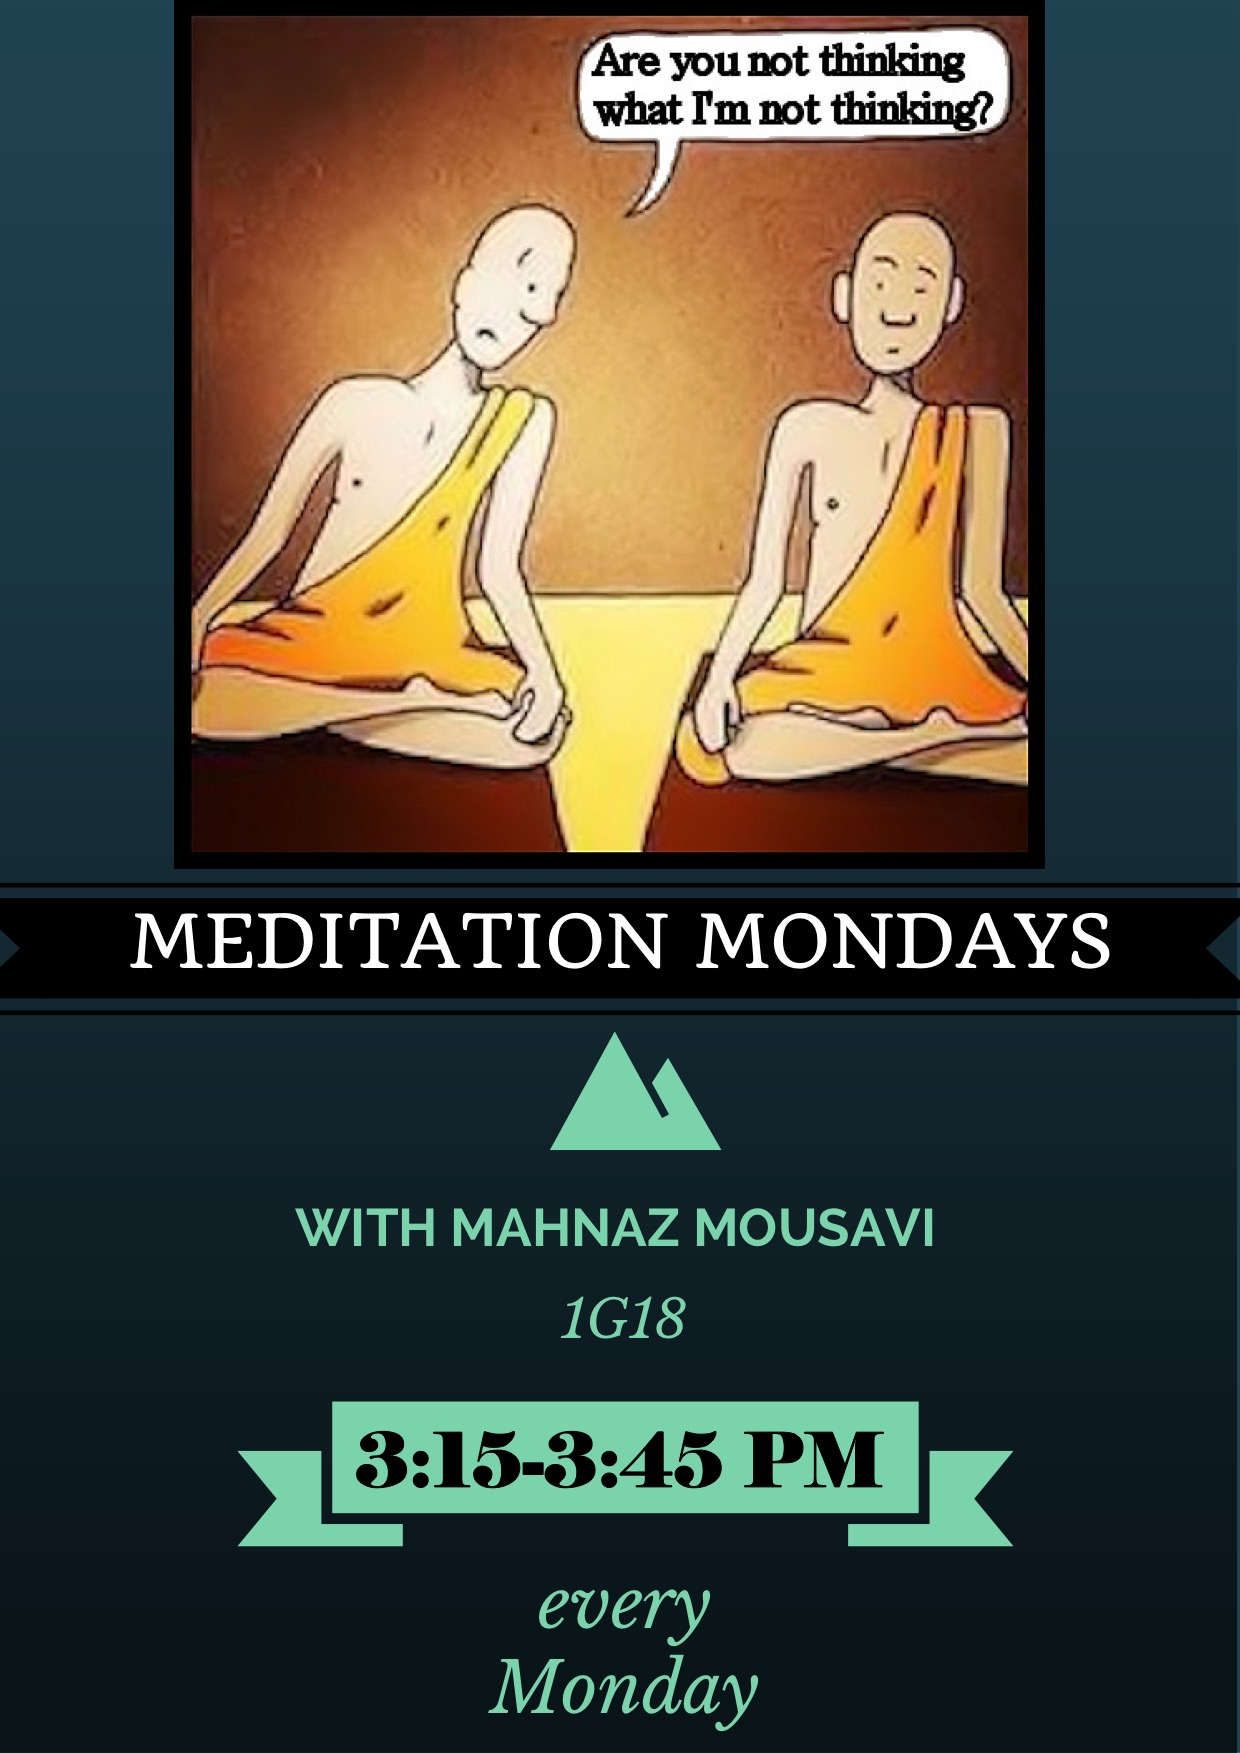 MEDITATION MONDAYS WITH MAHNAZ MOUSAVI 1G18 3:15-3:45 PM every Monday